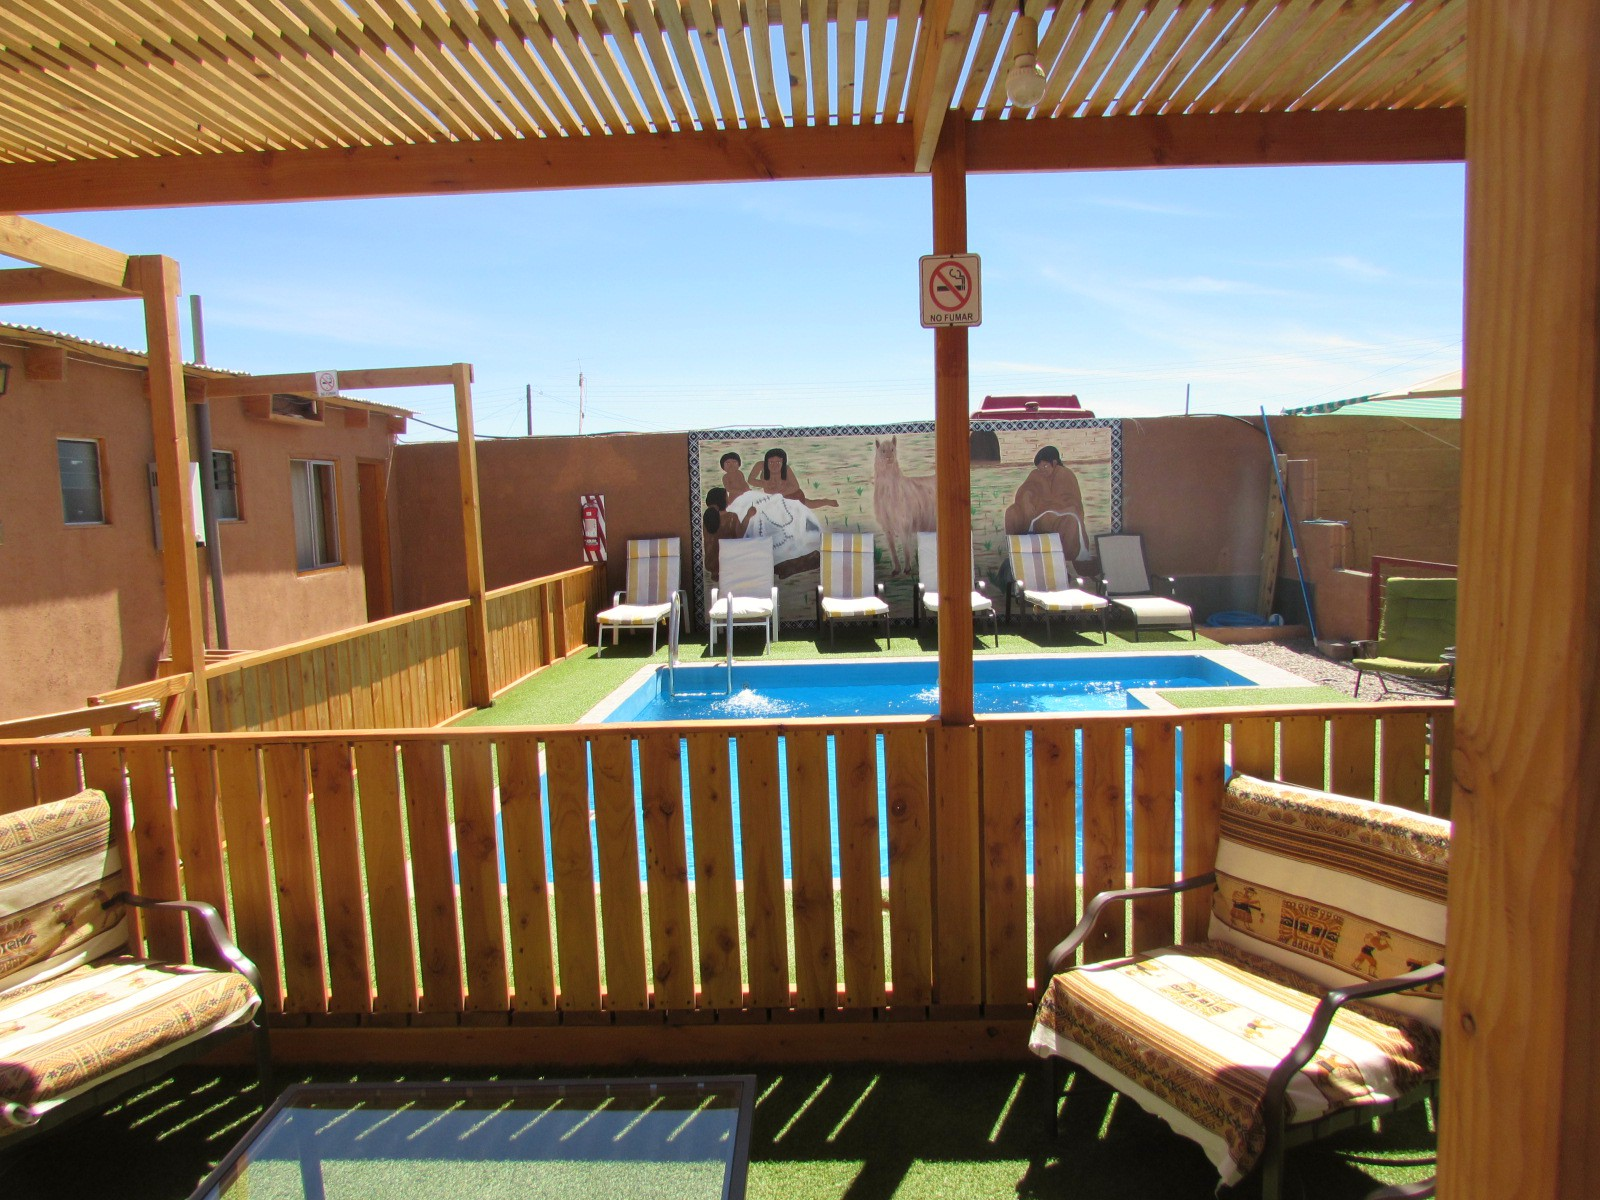 Staying At Hostal Pablito In Atacama Desert Finding New Paths Travel And Lifestyle Blog